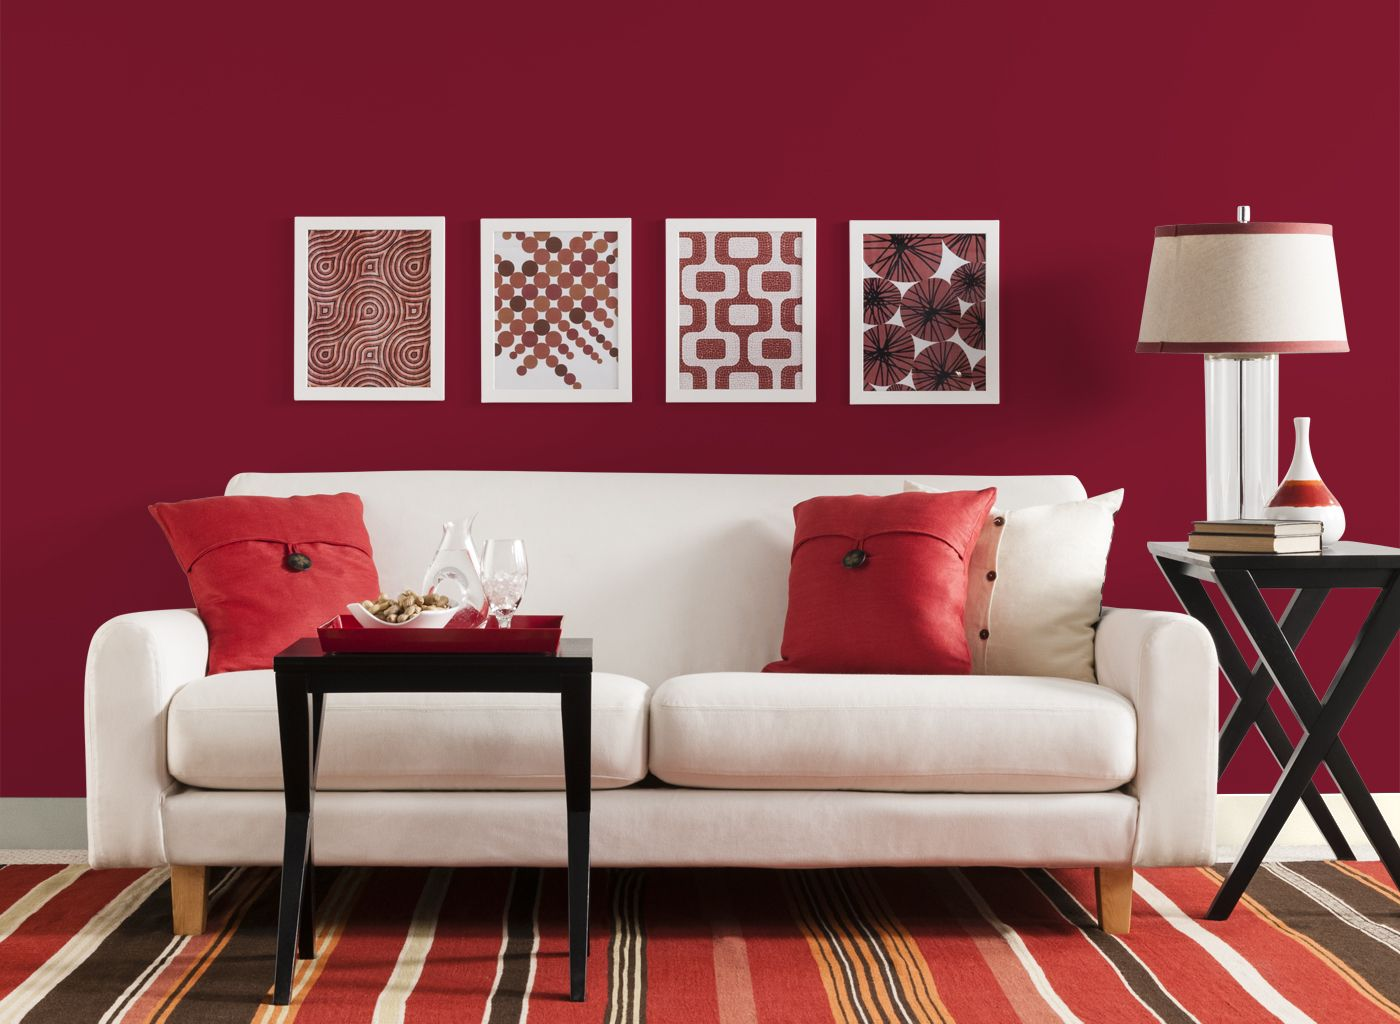 Living Room in Red Delicious Colores de interiores